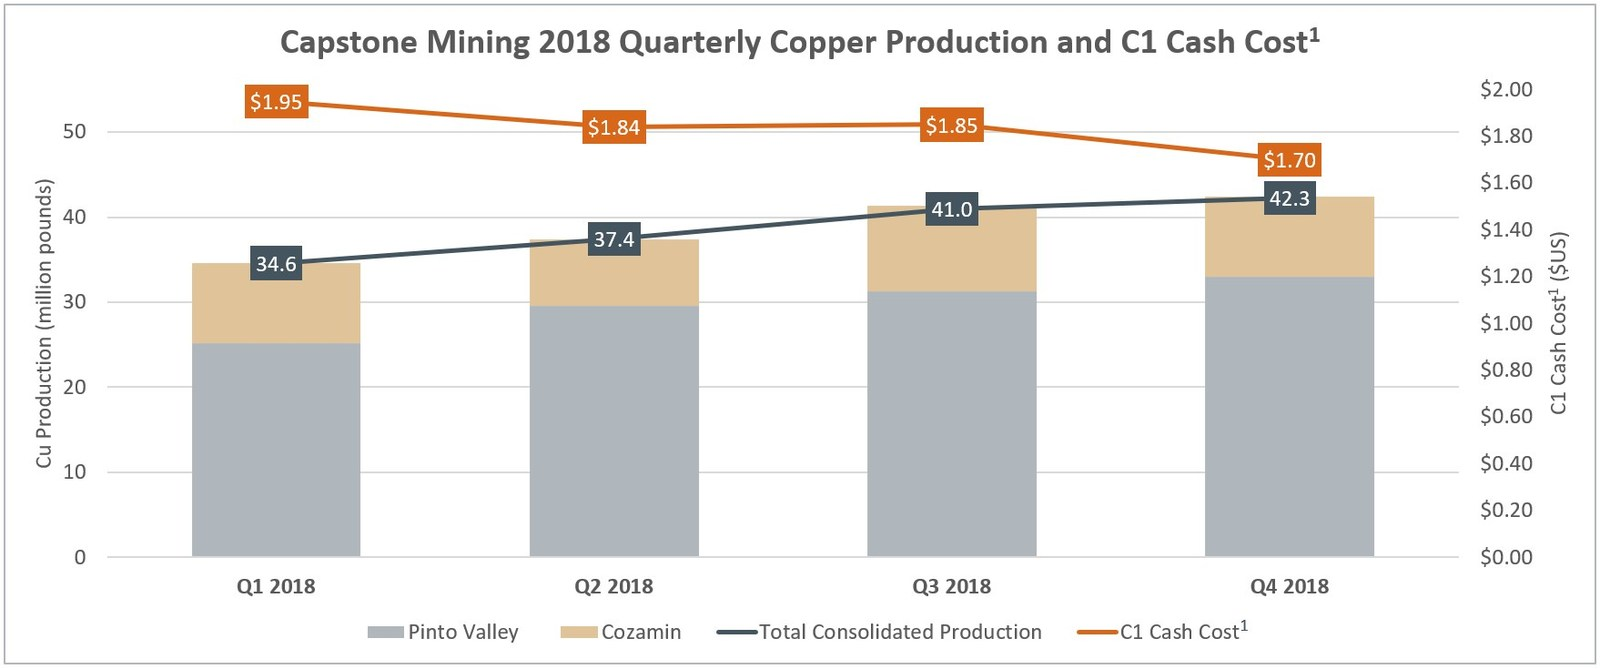 Capstone Mining Corp. 2018 Quarterly Copper Production and C1 Cash Cost